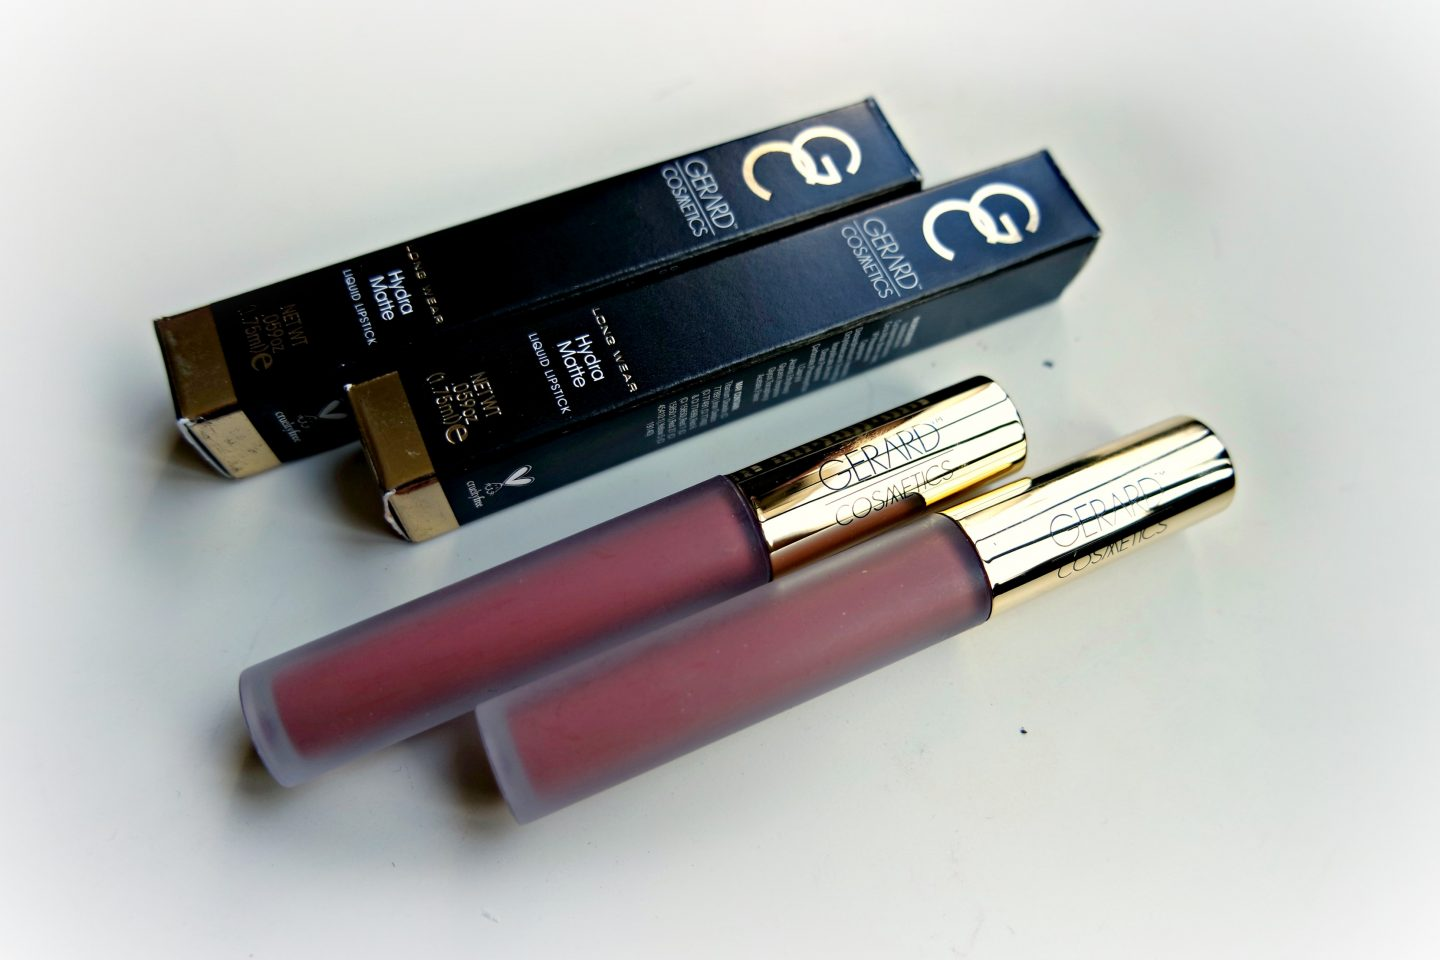 Gerard Cosmetics Hydra Matte Liquid Lipstick in 1995 and Everything Nice